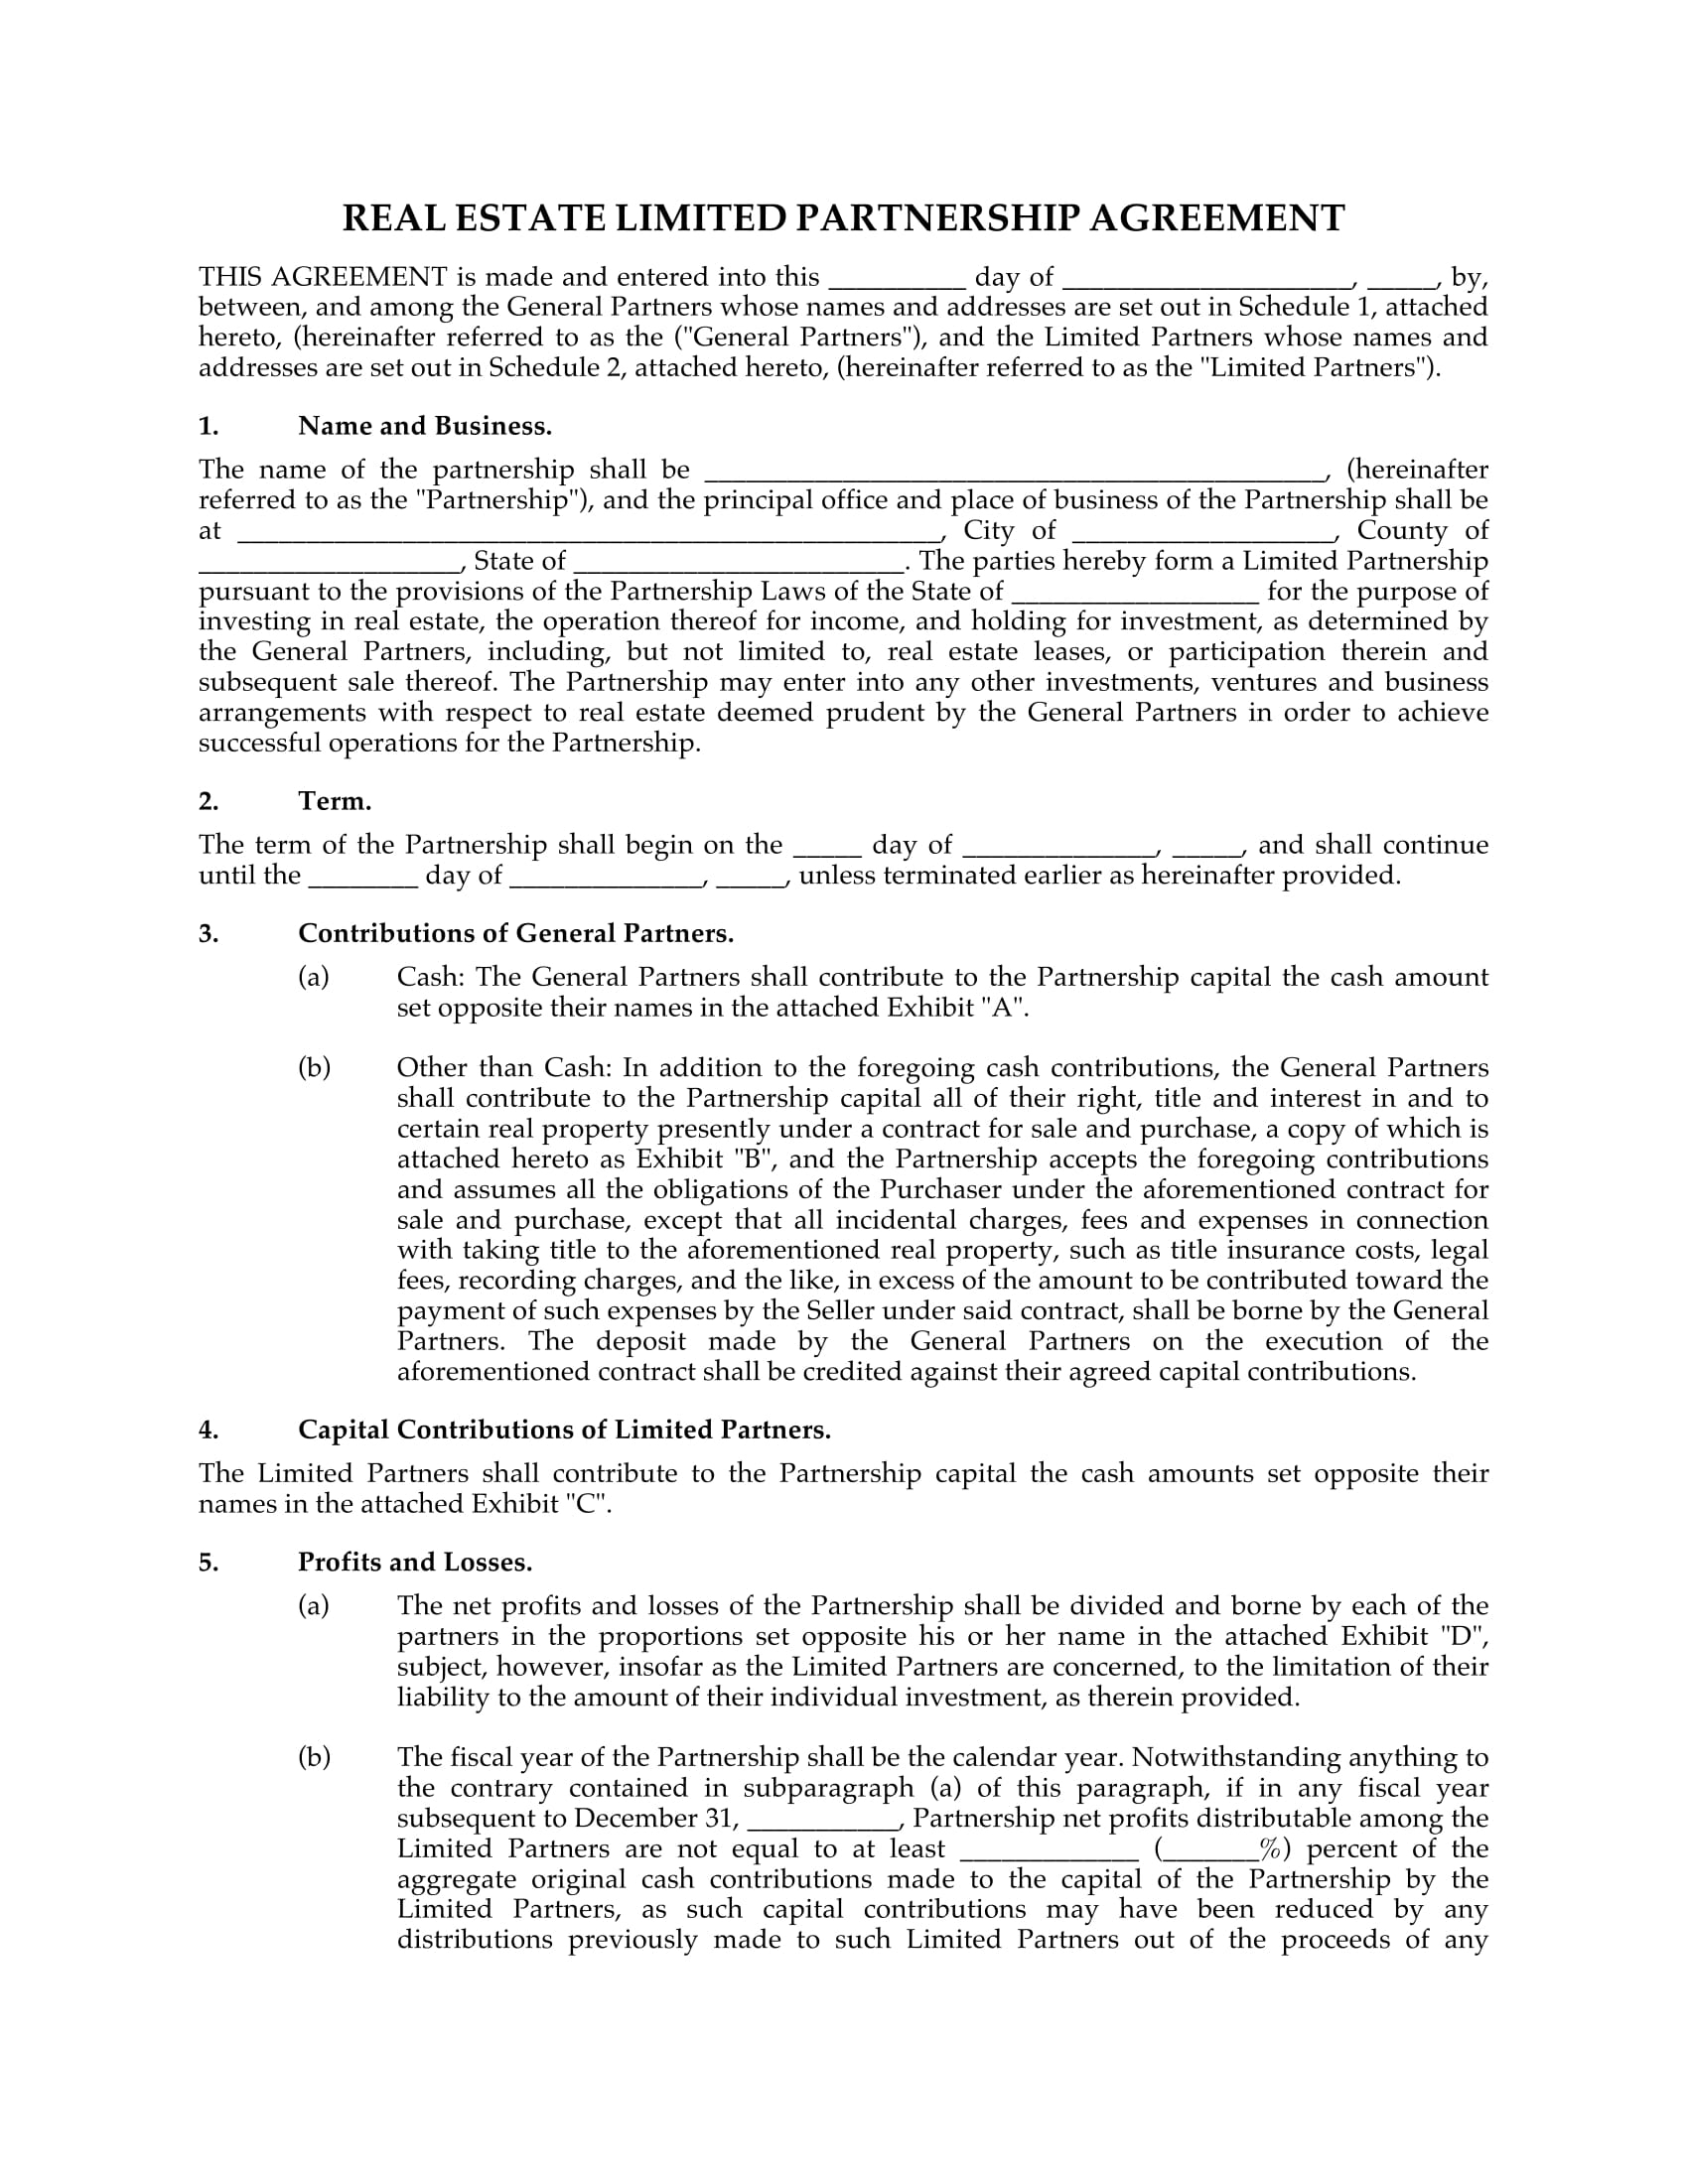 real estate limited partnership agreement 1